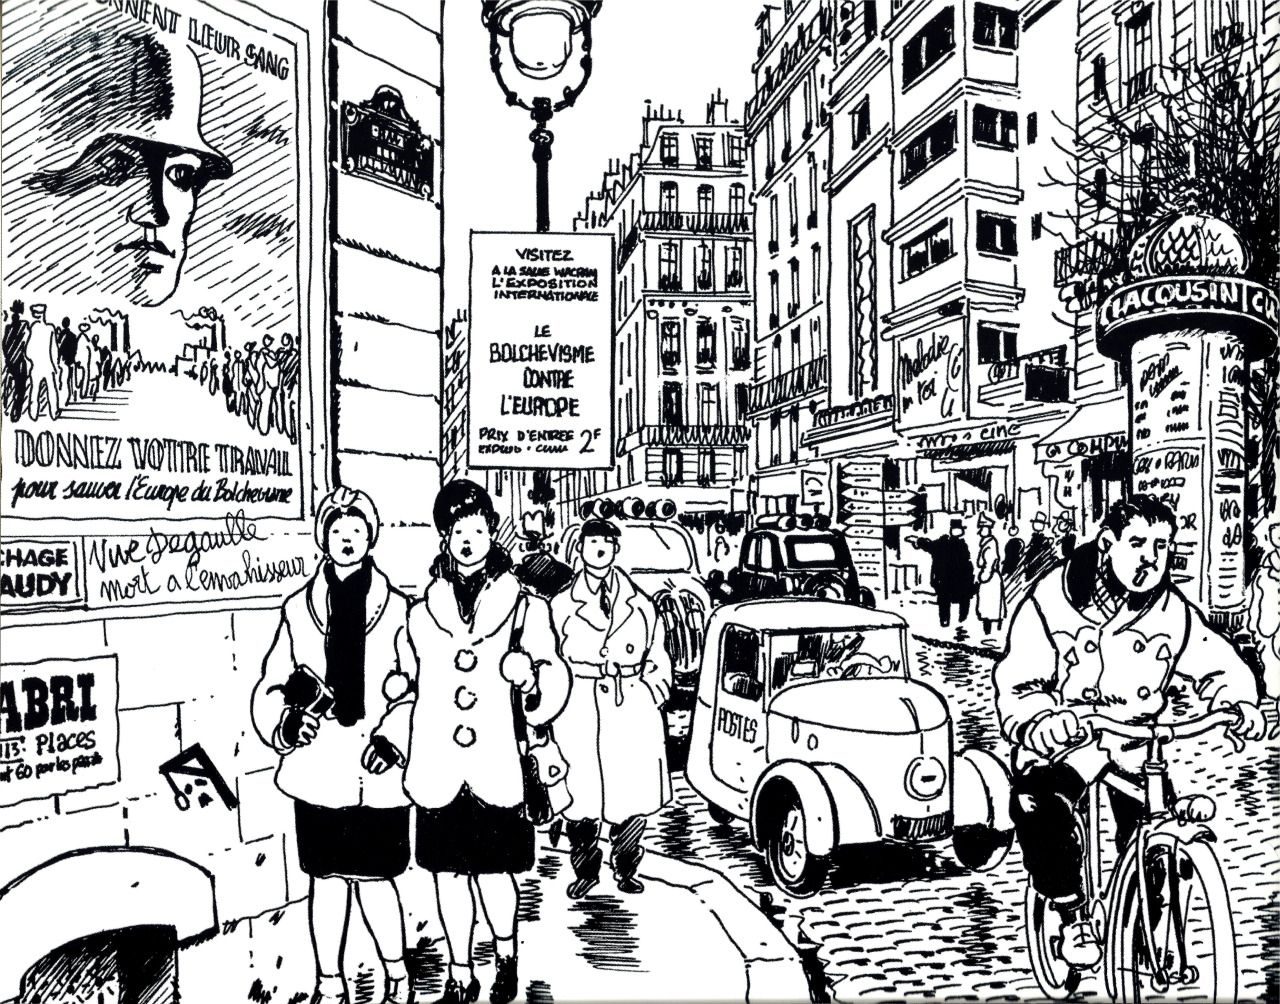 Jacques TARDI War and Mail - The Extraordinary Everyday Life of French People during wartime - 1870-1945 The Second World War